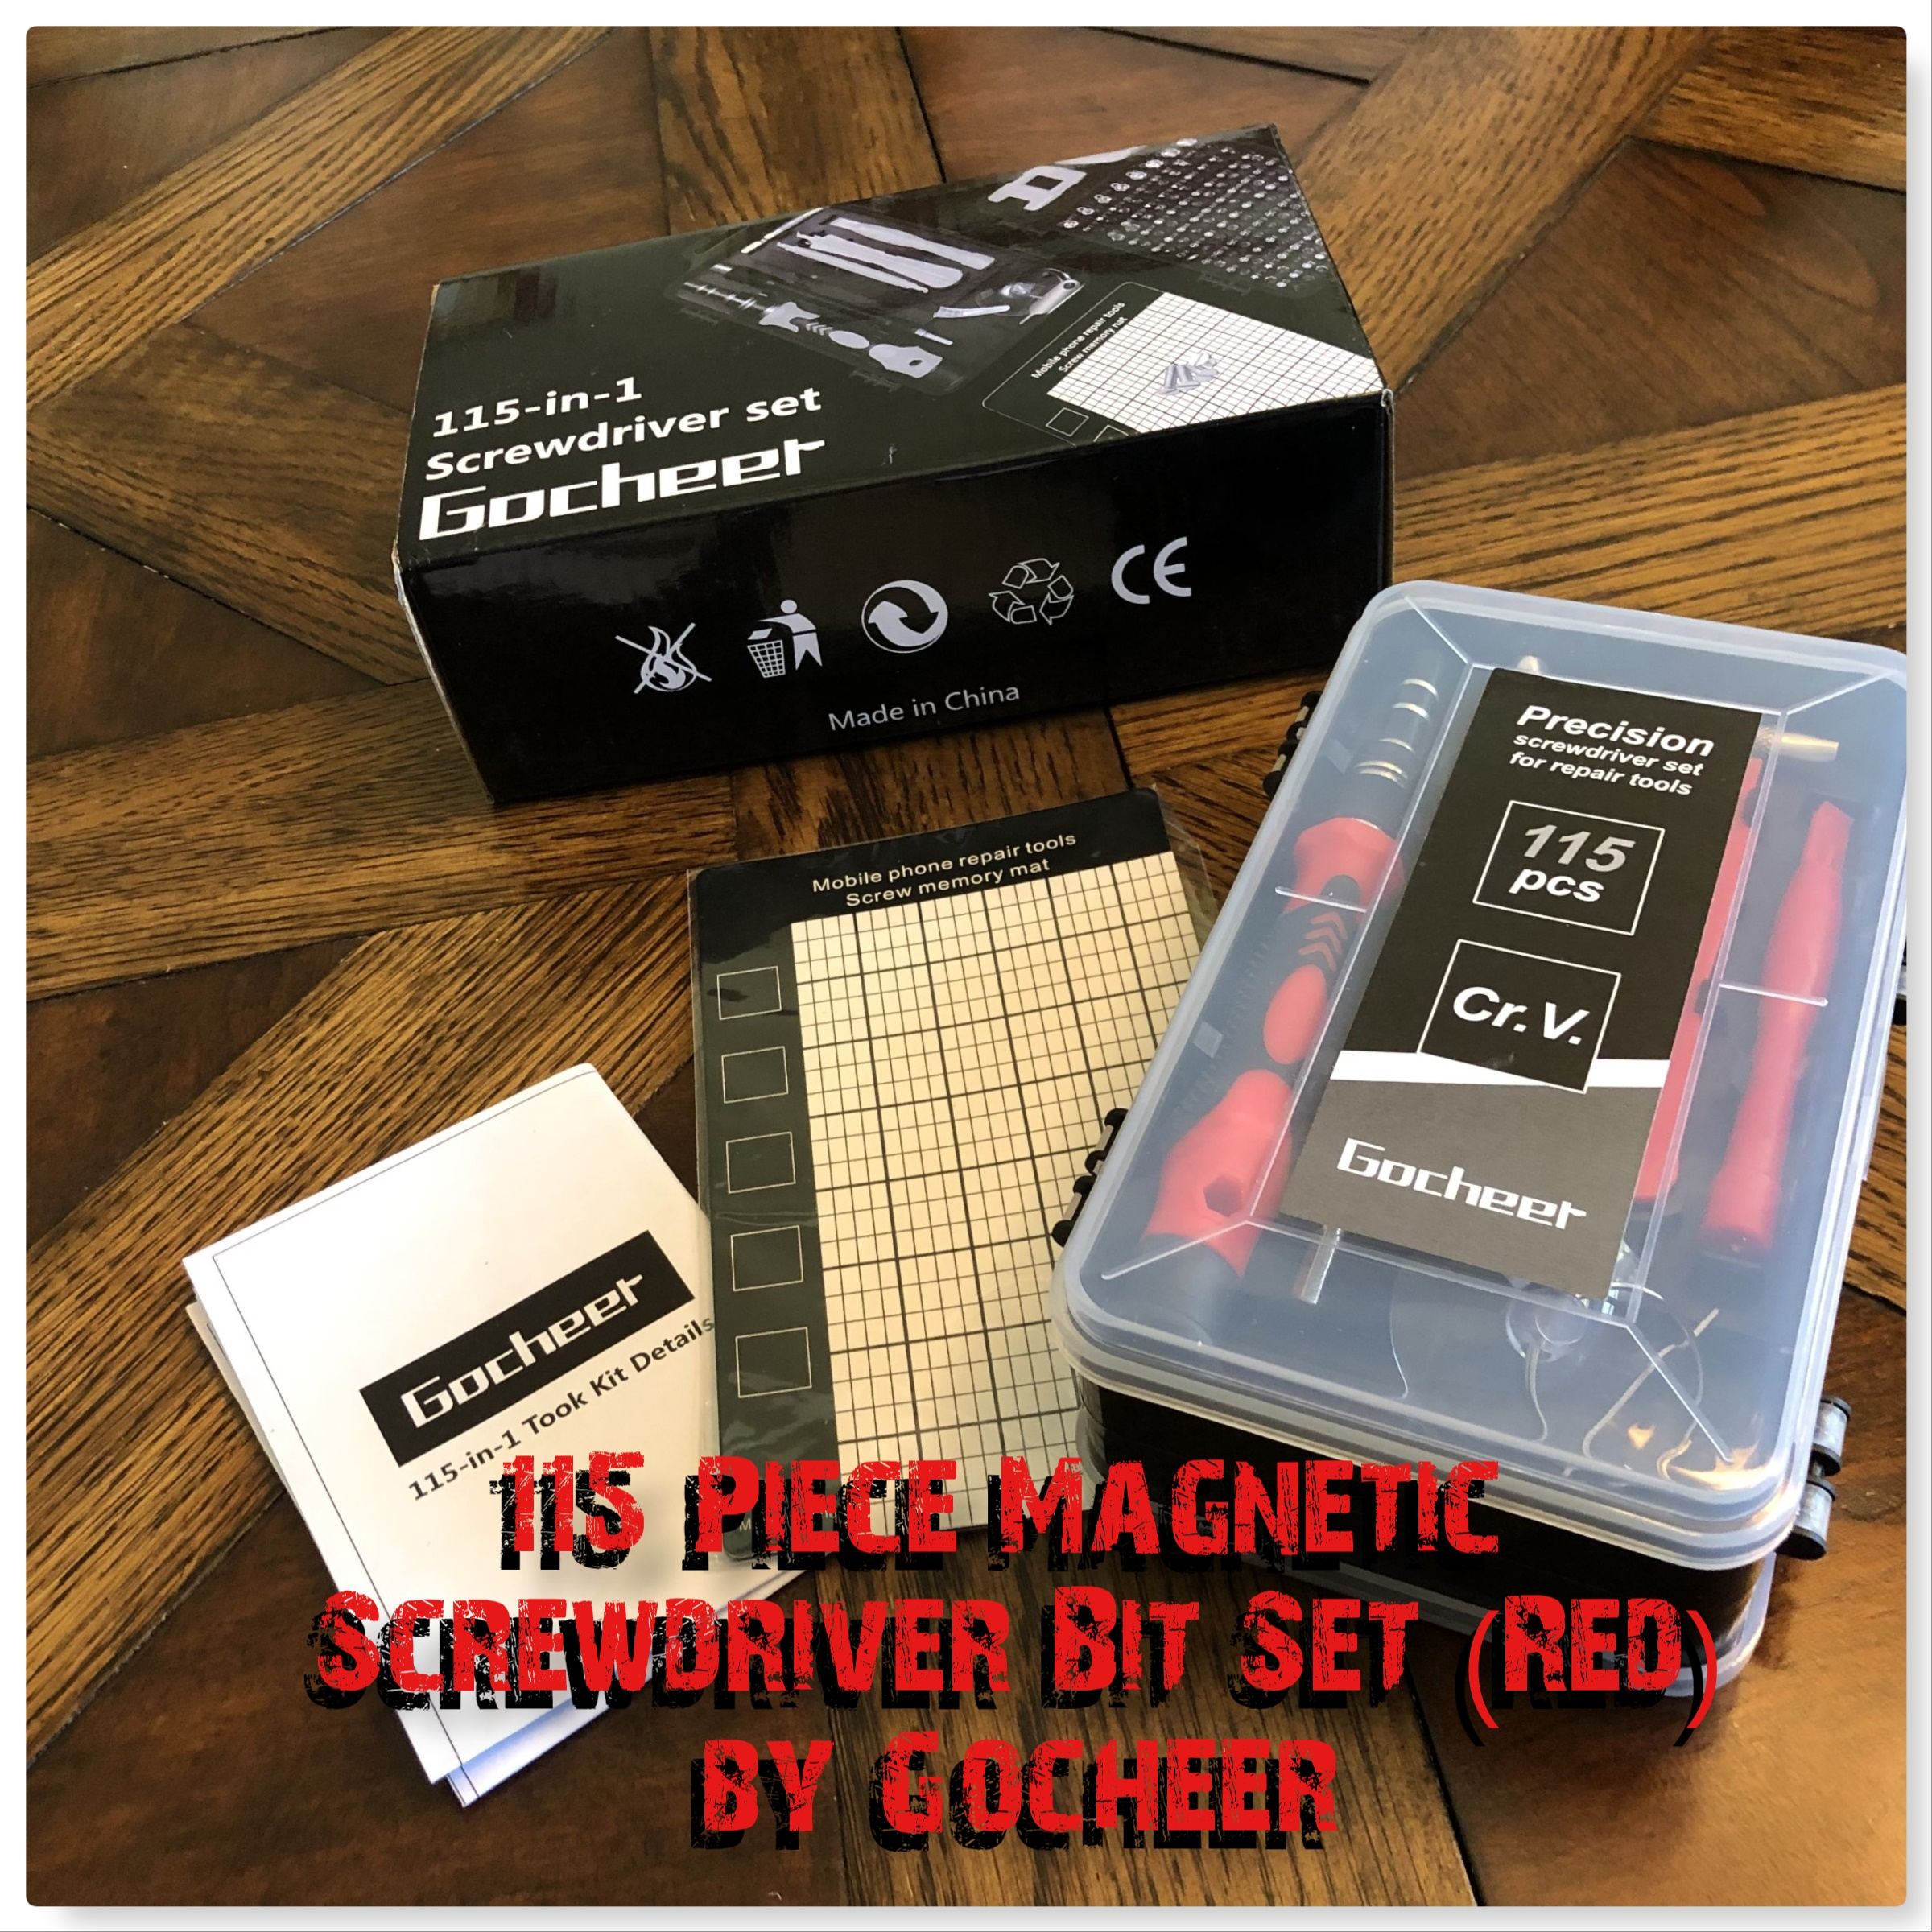 Review of the: 115 Piece Magnetic Screwdriver Bit Set (Red) by Gocheer